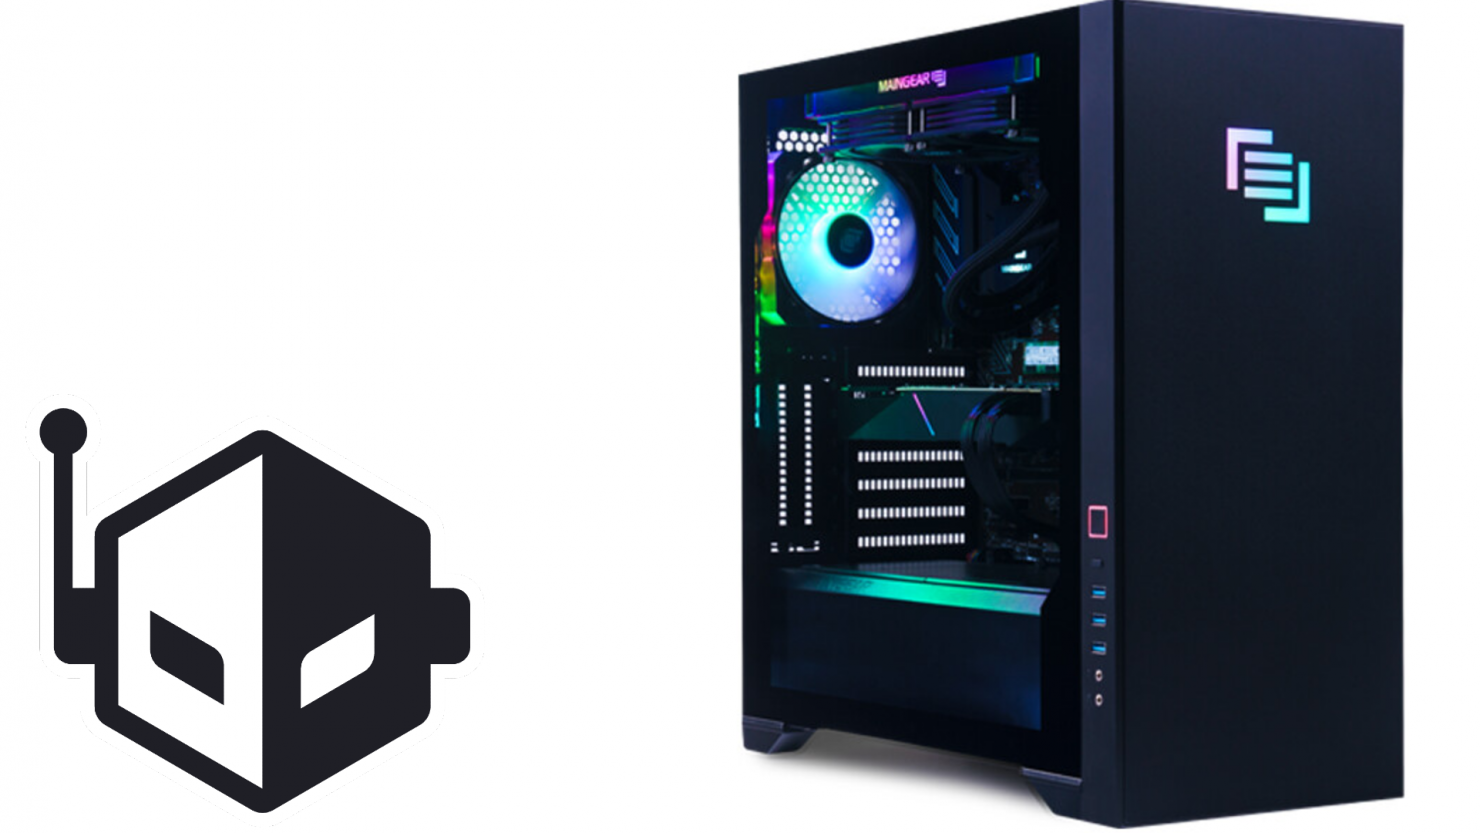 maingear-adds-the-rtx-3080-ti-&-rtx-3070-ti-graphics-cards-to-various-desktops